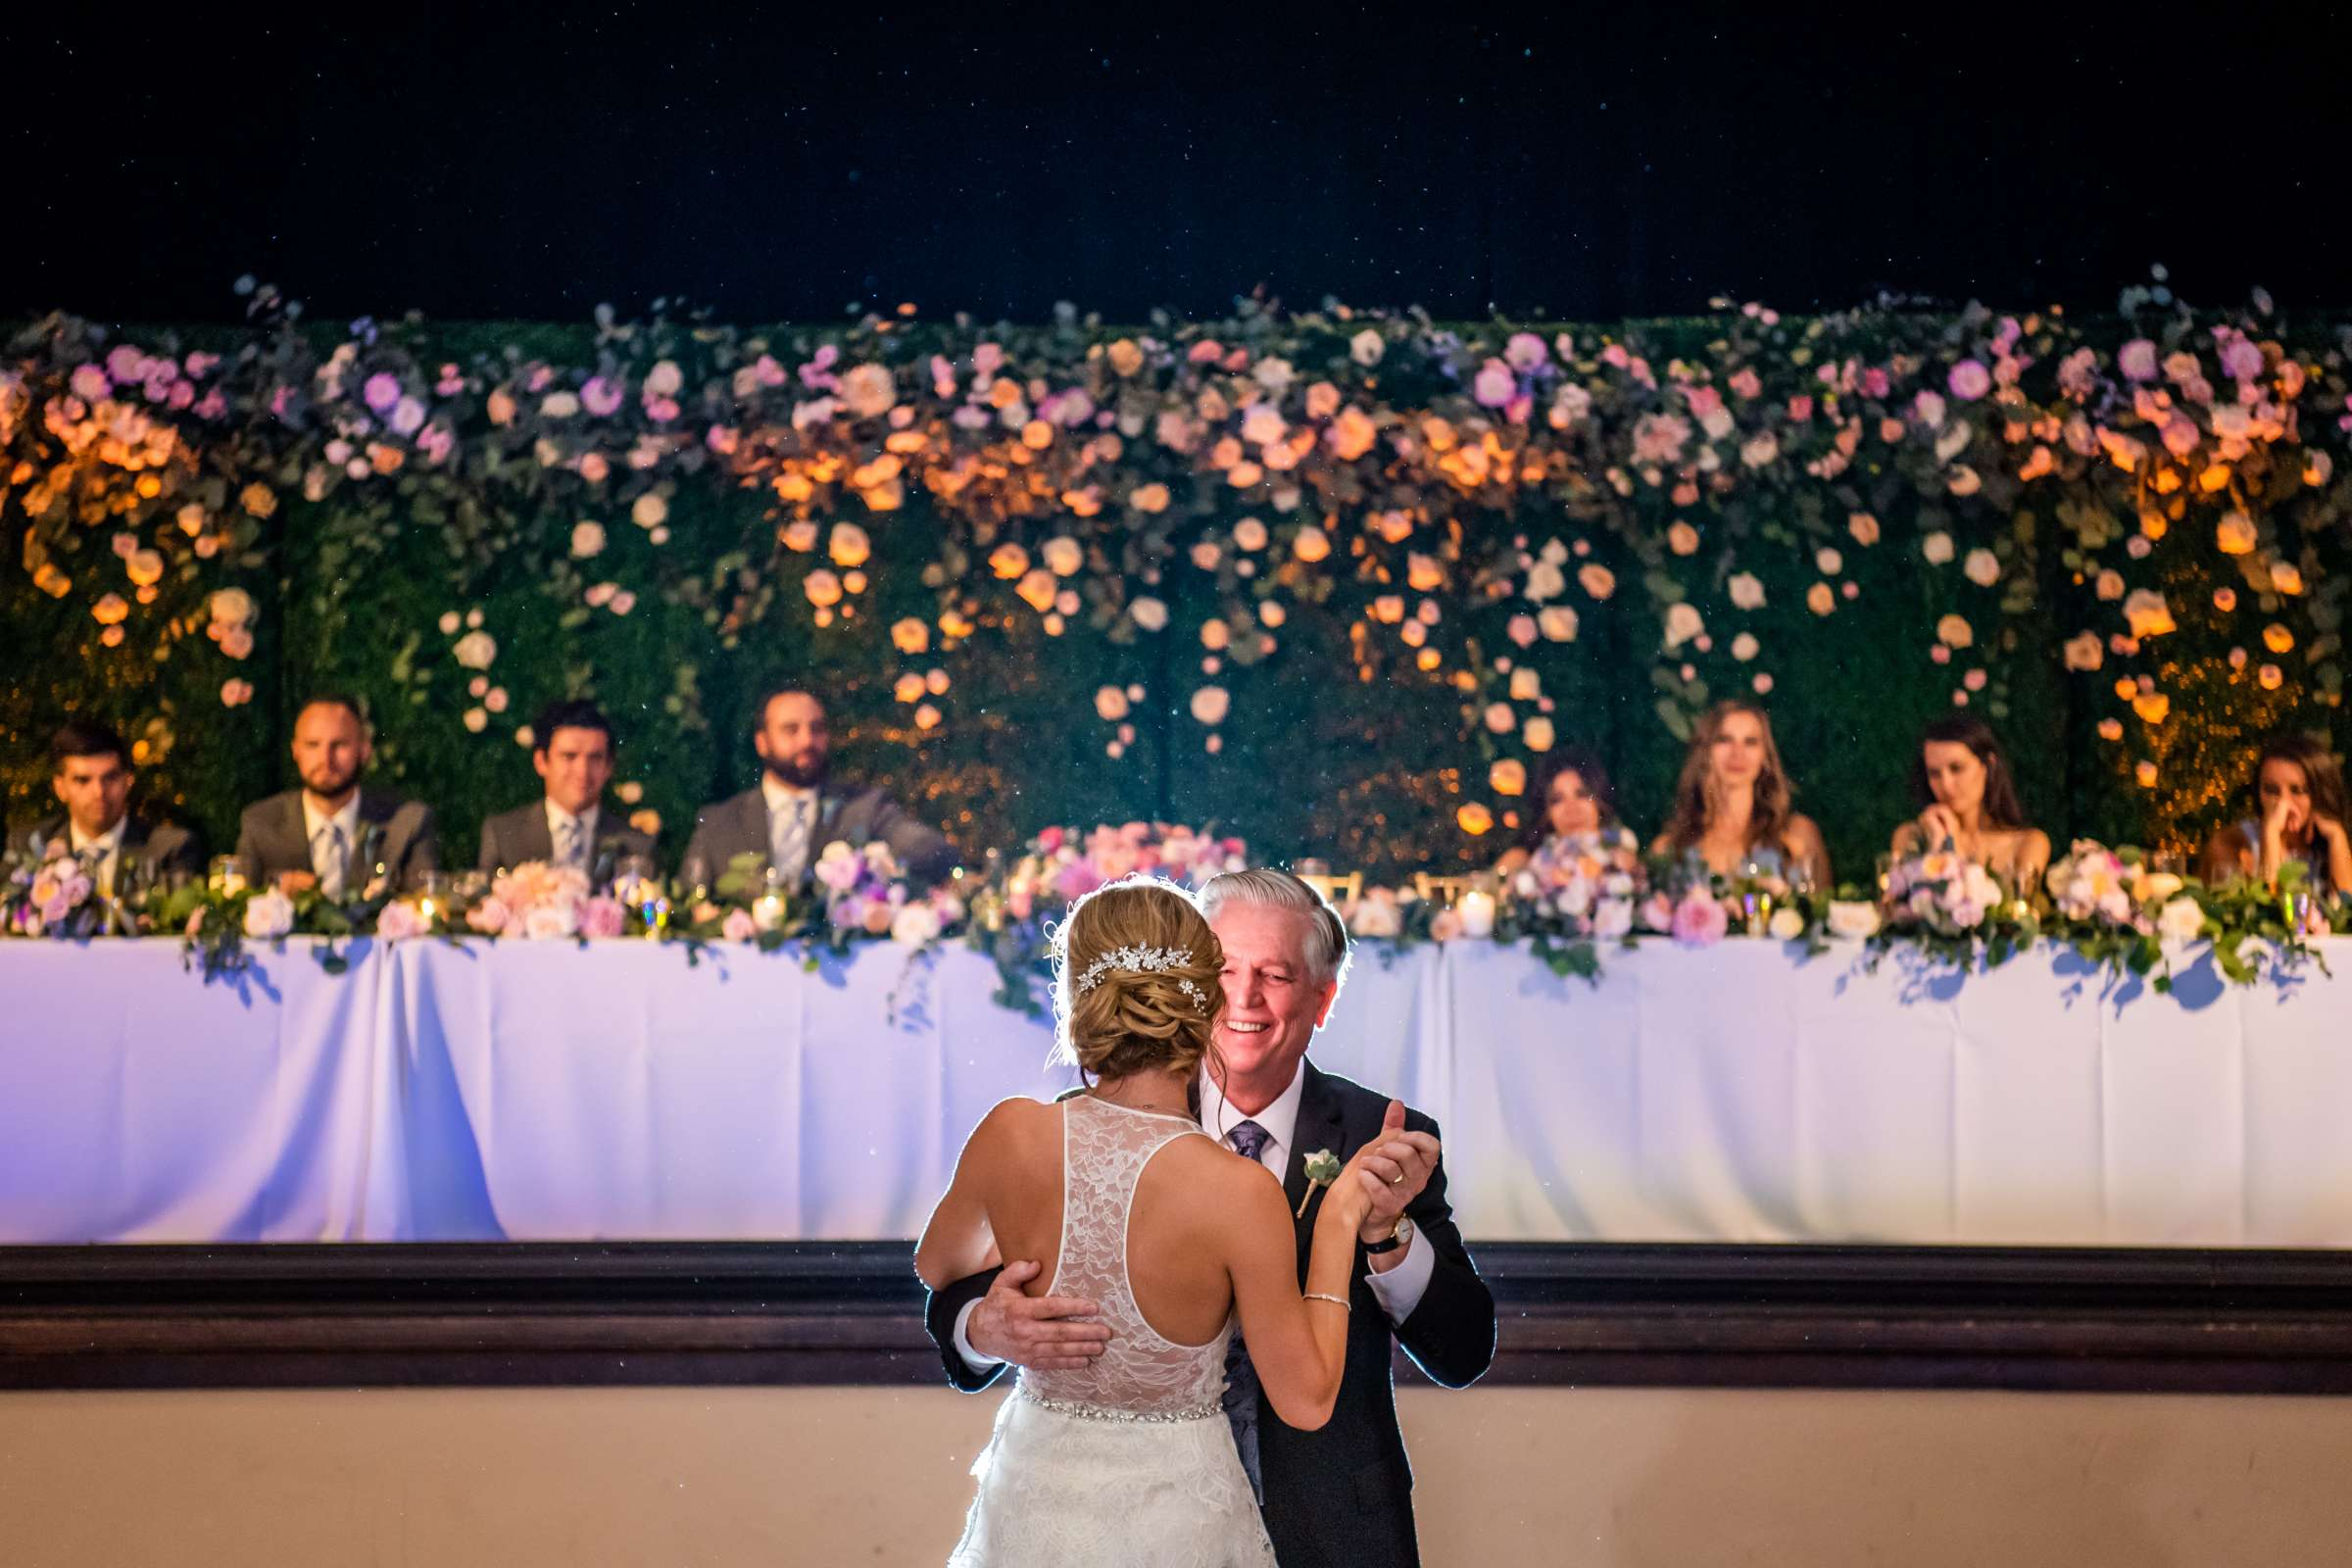 The Prado Wedding coordinated by Bliss Events, Sara and Marvin Wedding Photo #559630 by True Photography